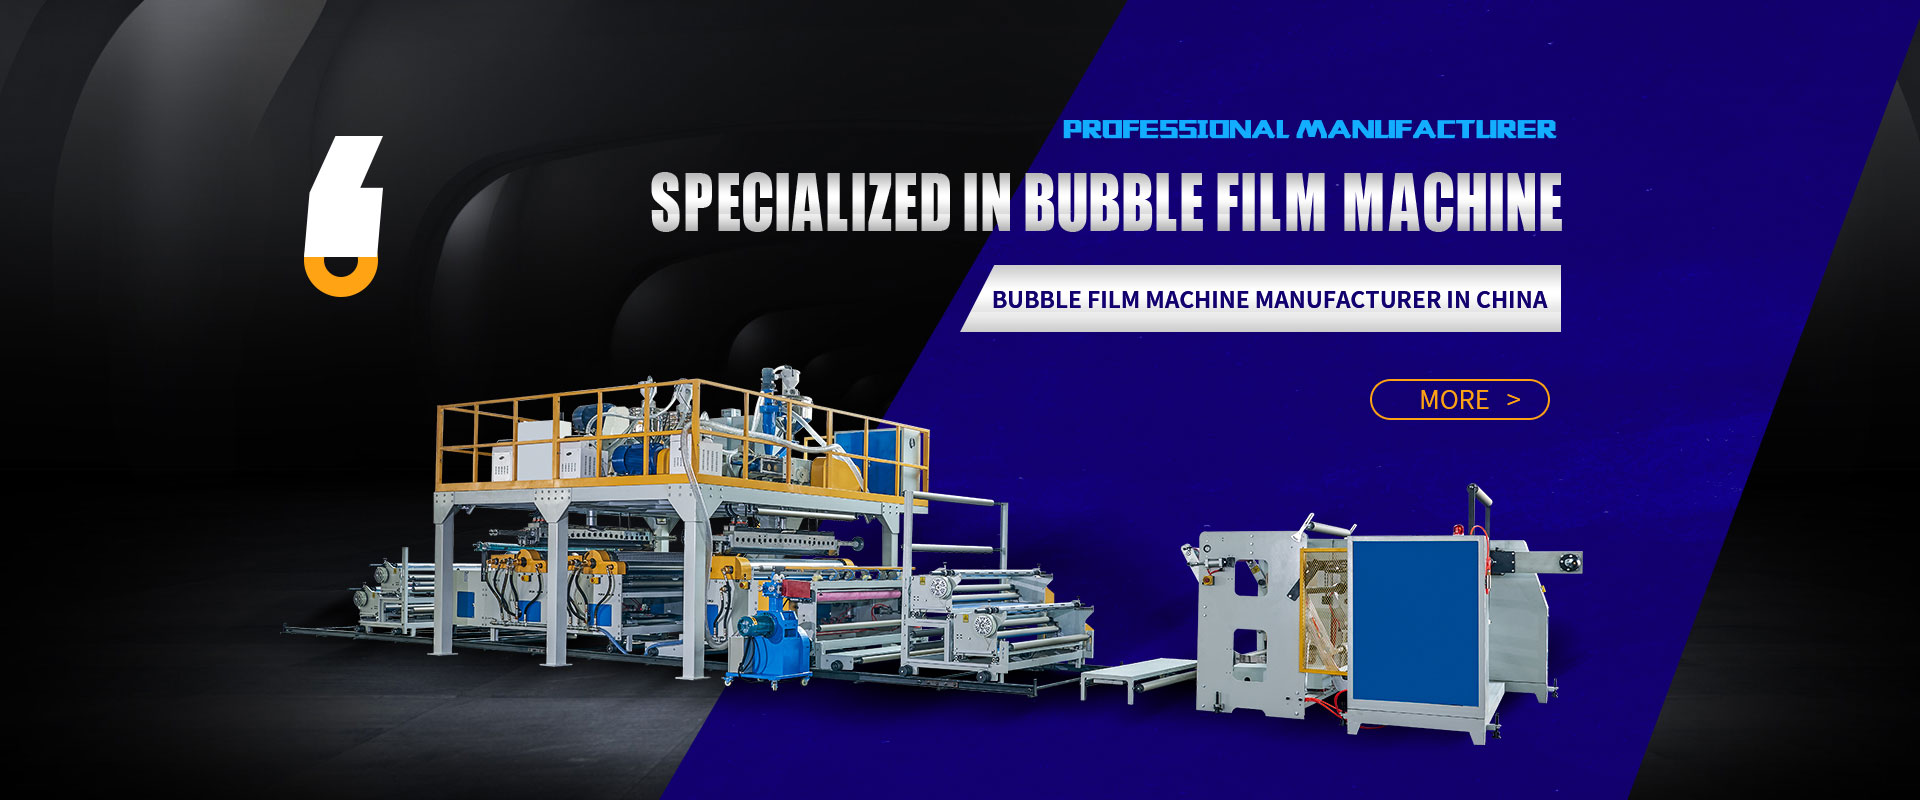 China bubble film equipment manufacturer